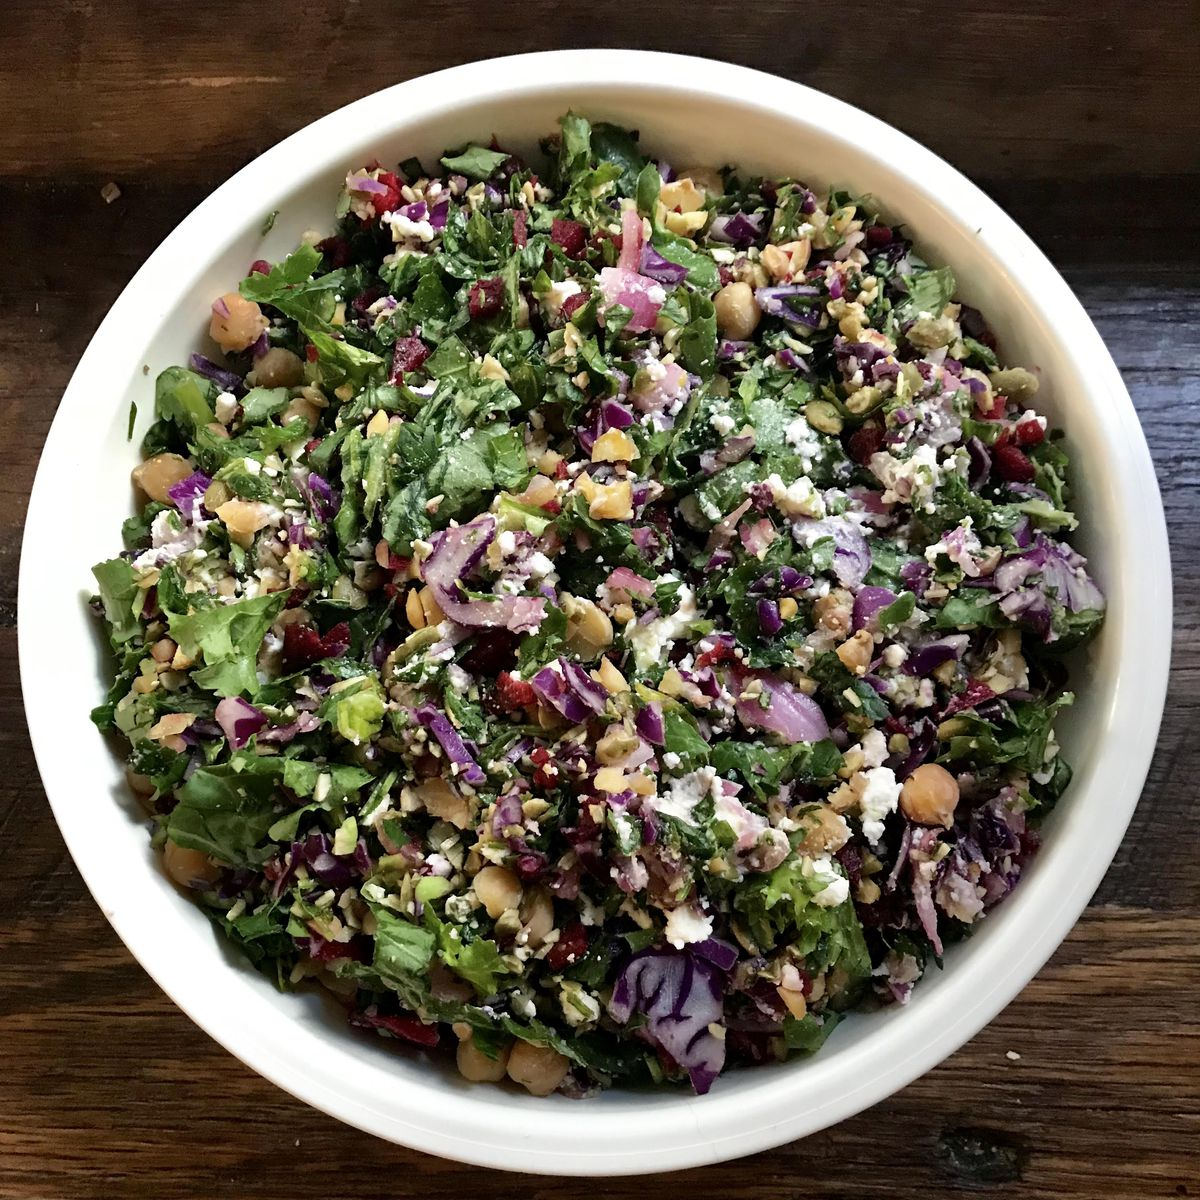 A chopped salad from Just Salad